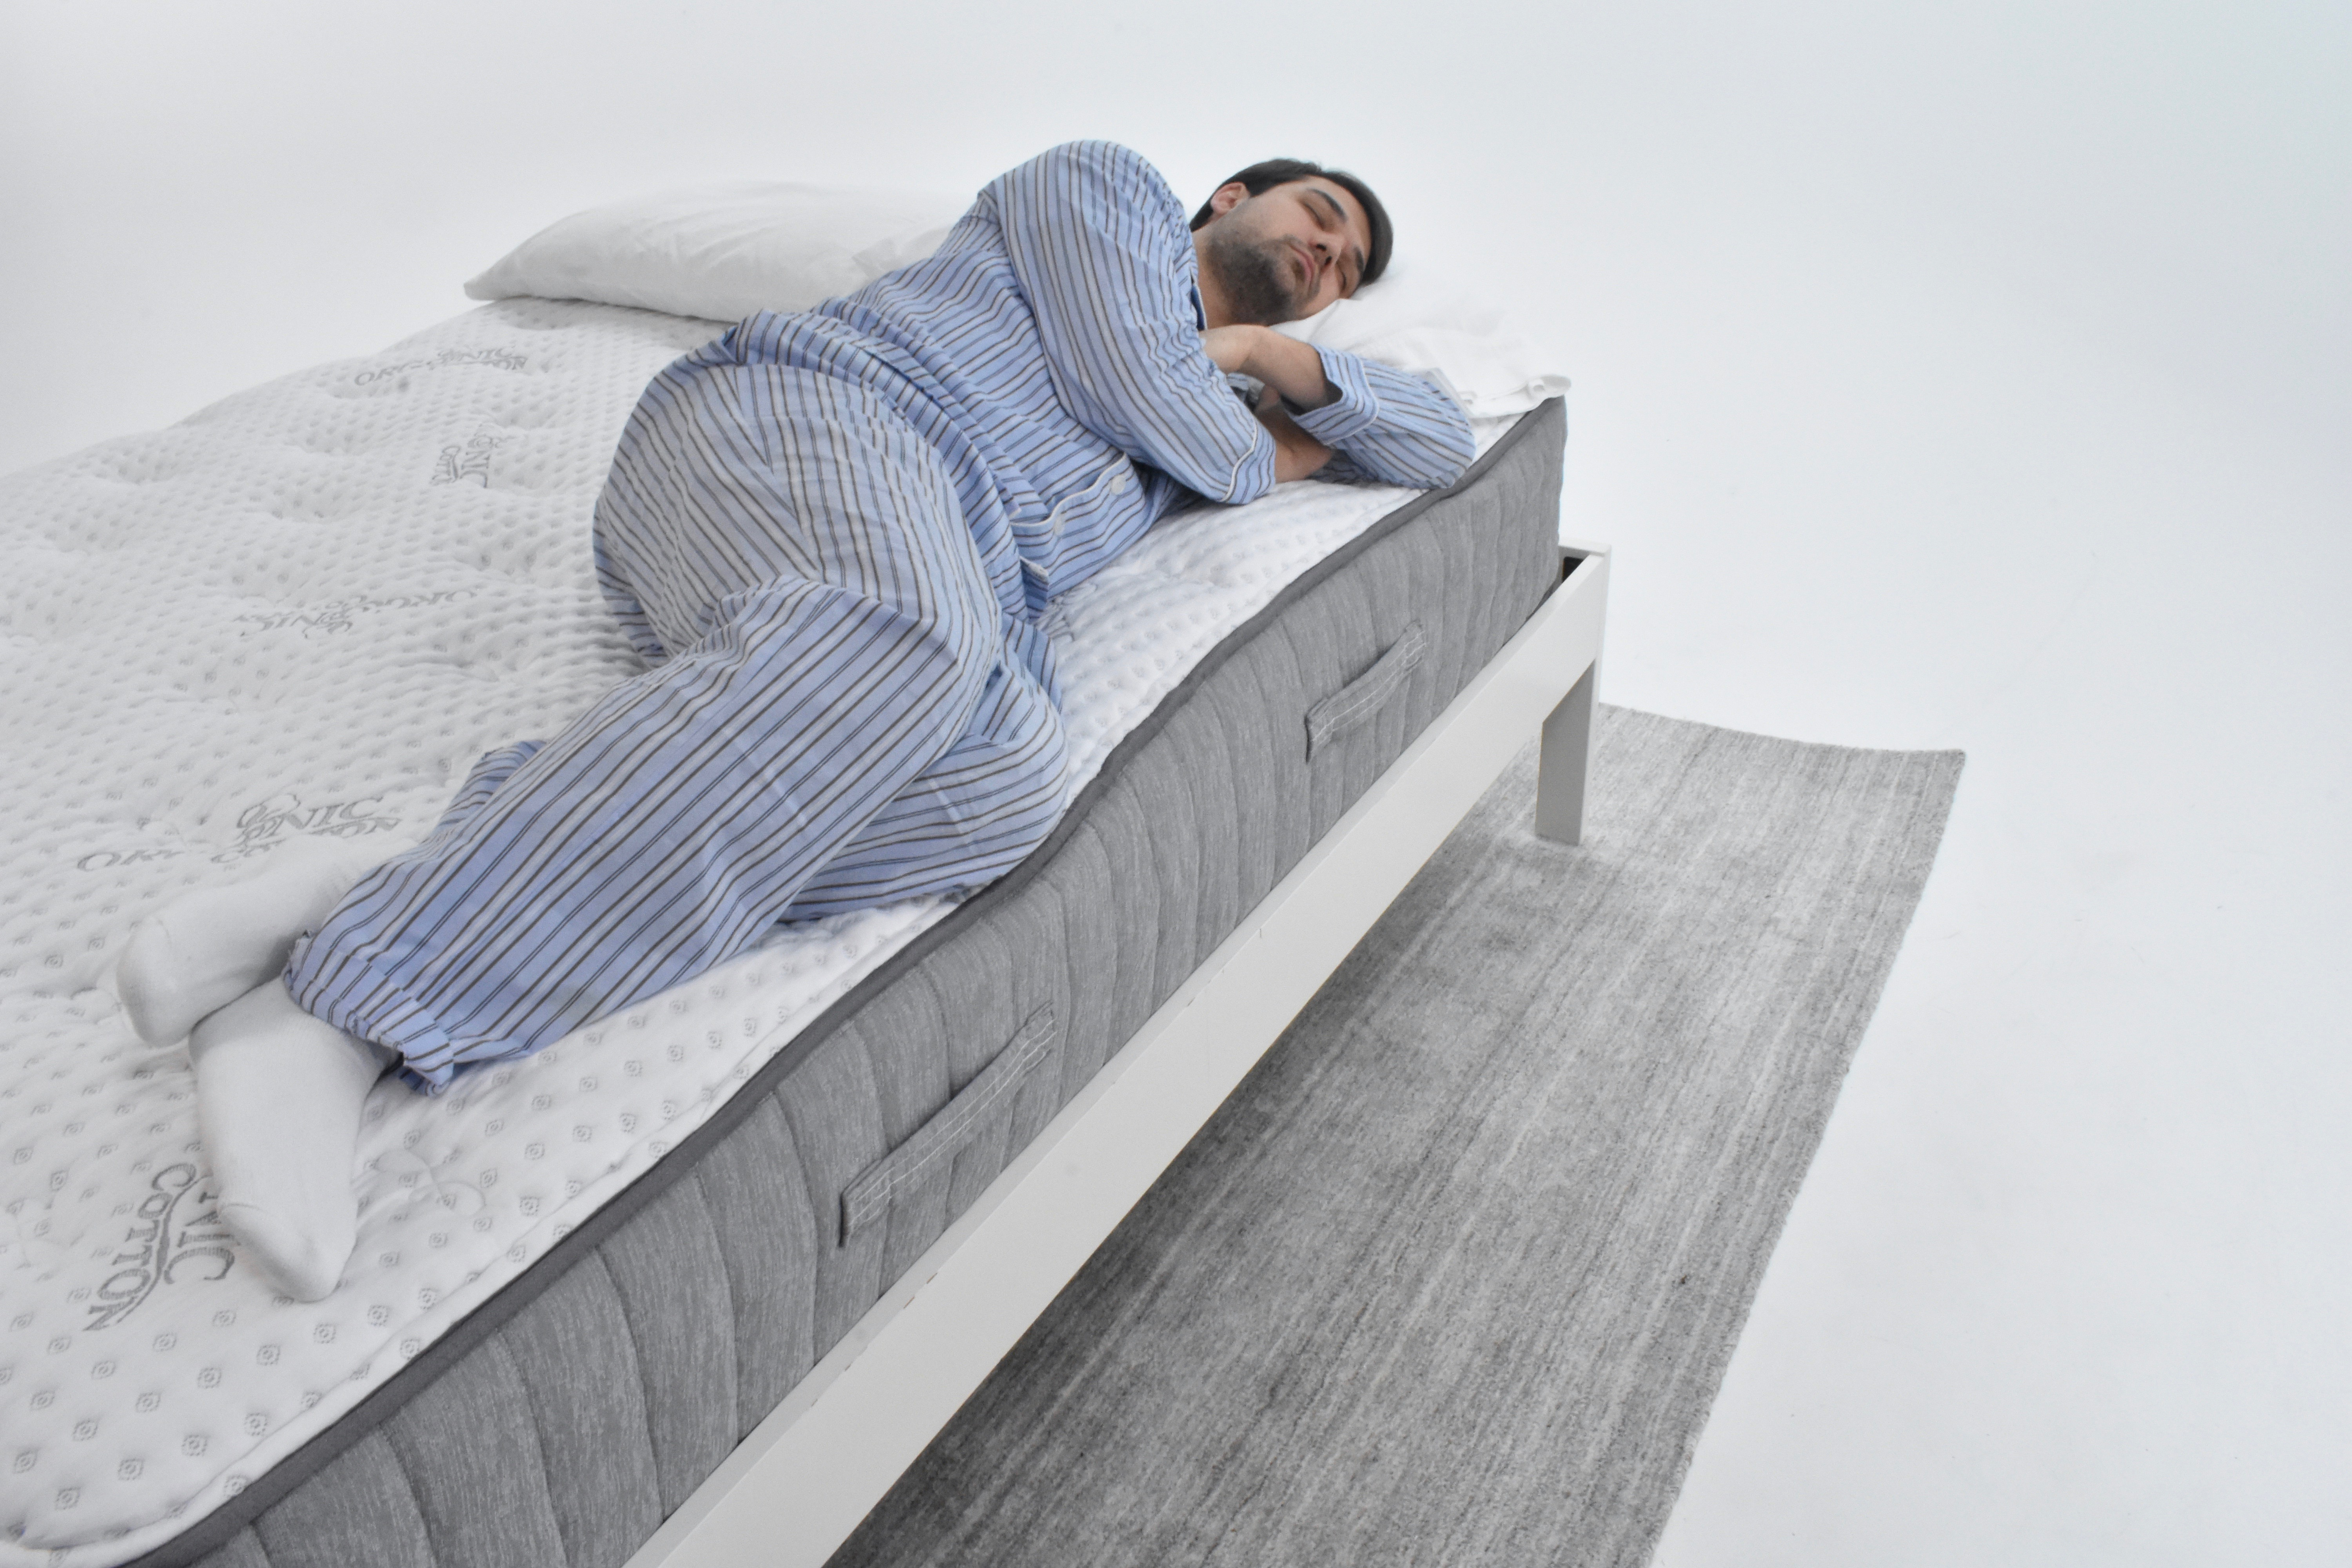 Man laying on the edge of the Bloom Hybrid testing the edge support